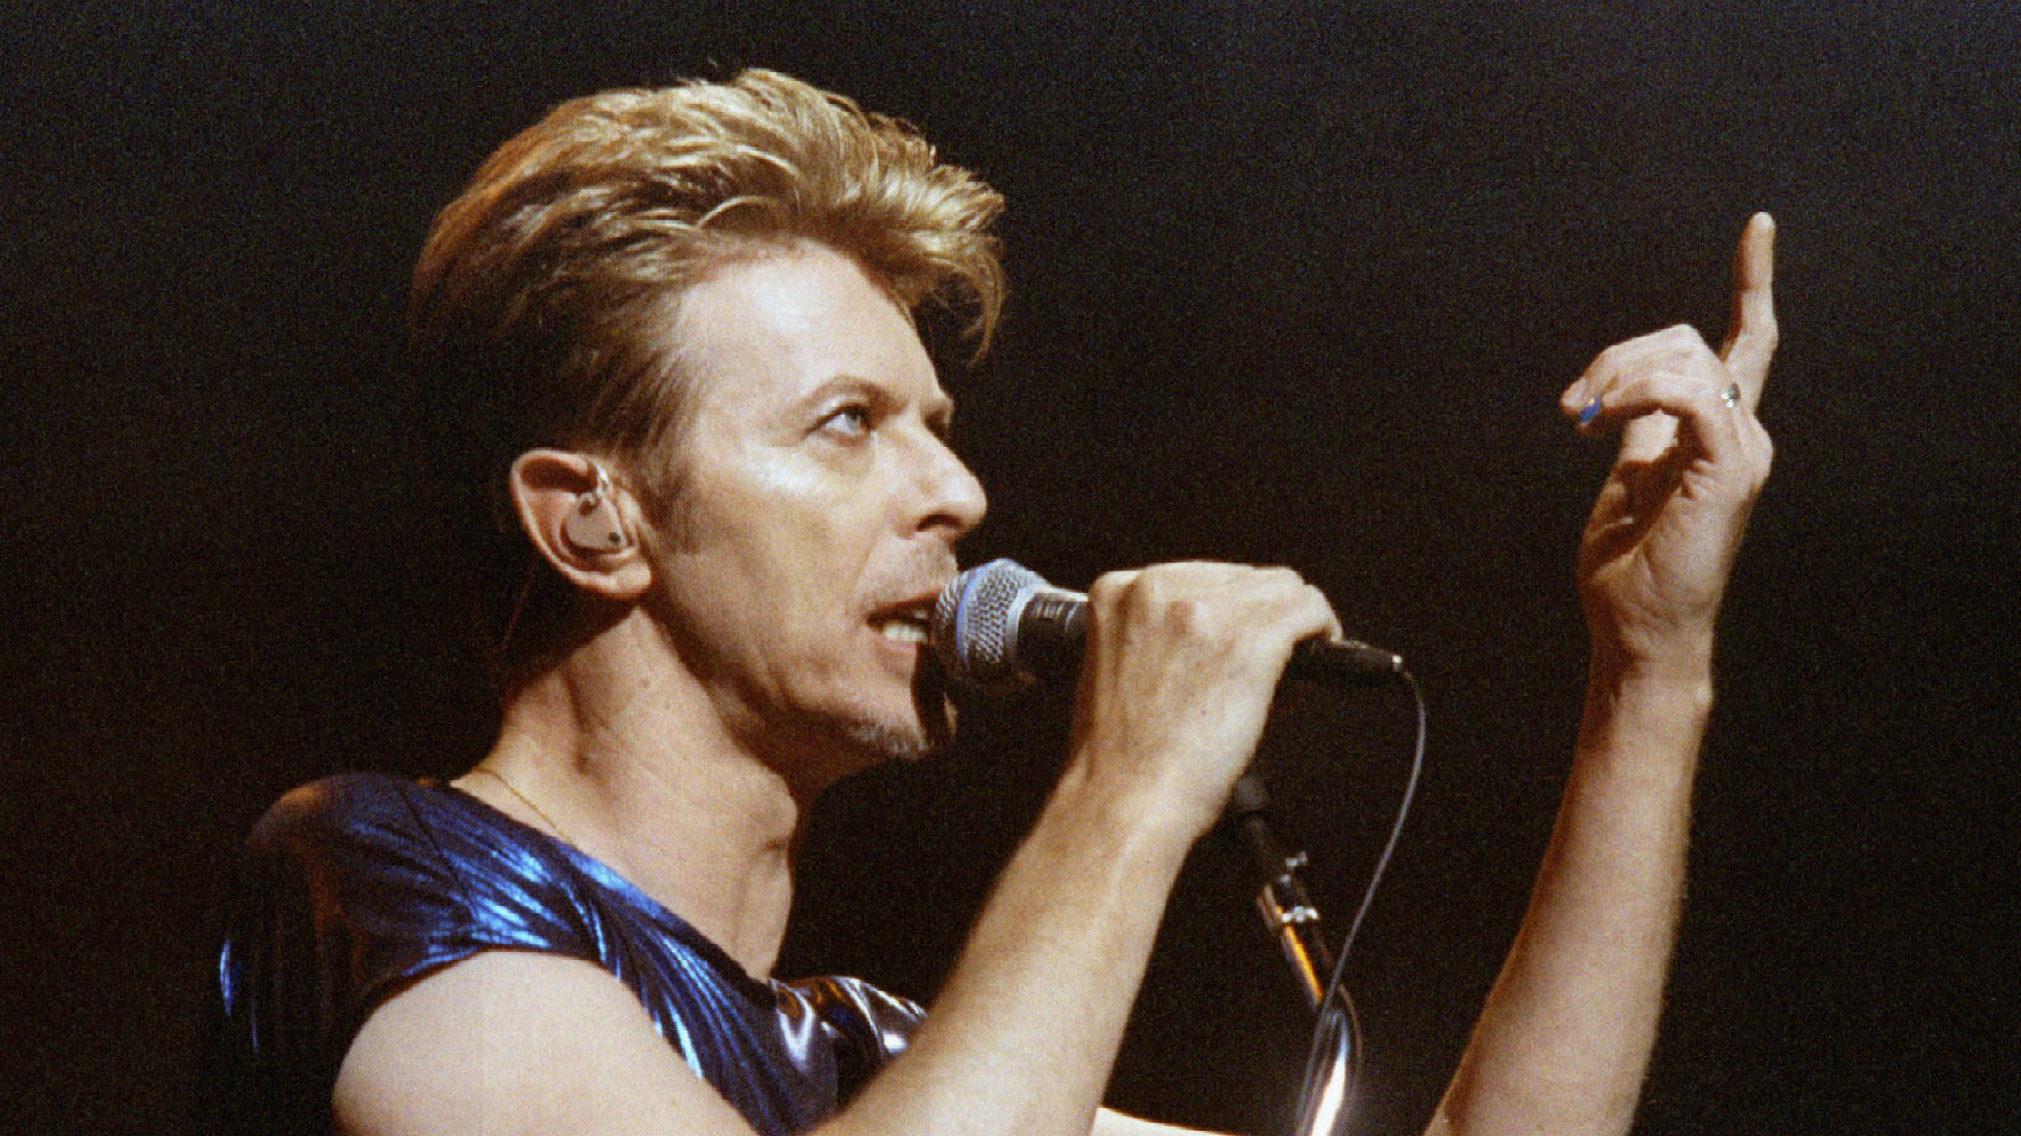 Singer David Bowie gestures as he  performs one of the the first songs of a six-week concert tour of North America while appearing with the band Nine Inch Nails at the Meadows Music Theater in  Hartford, Connecticut, September 14 .